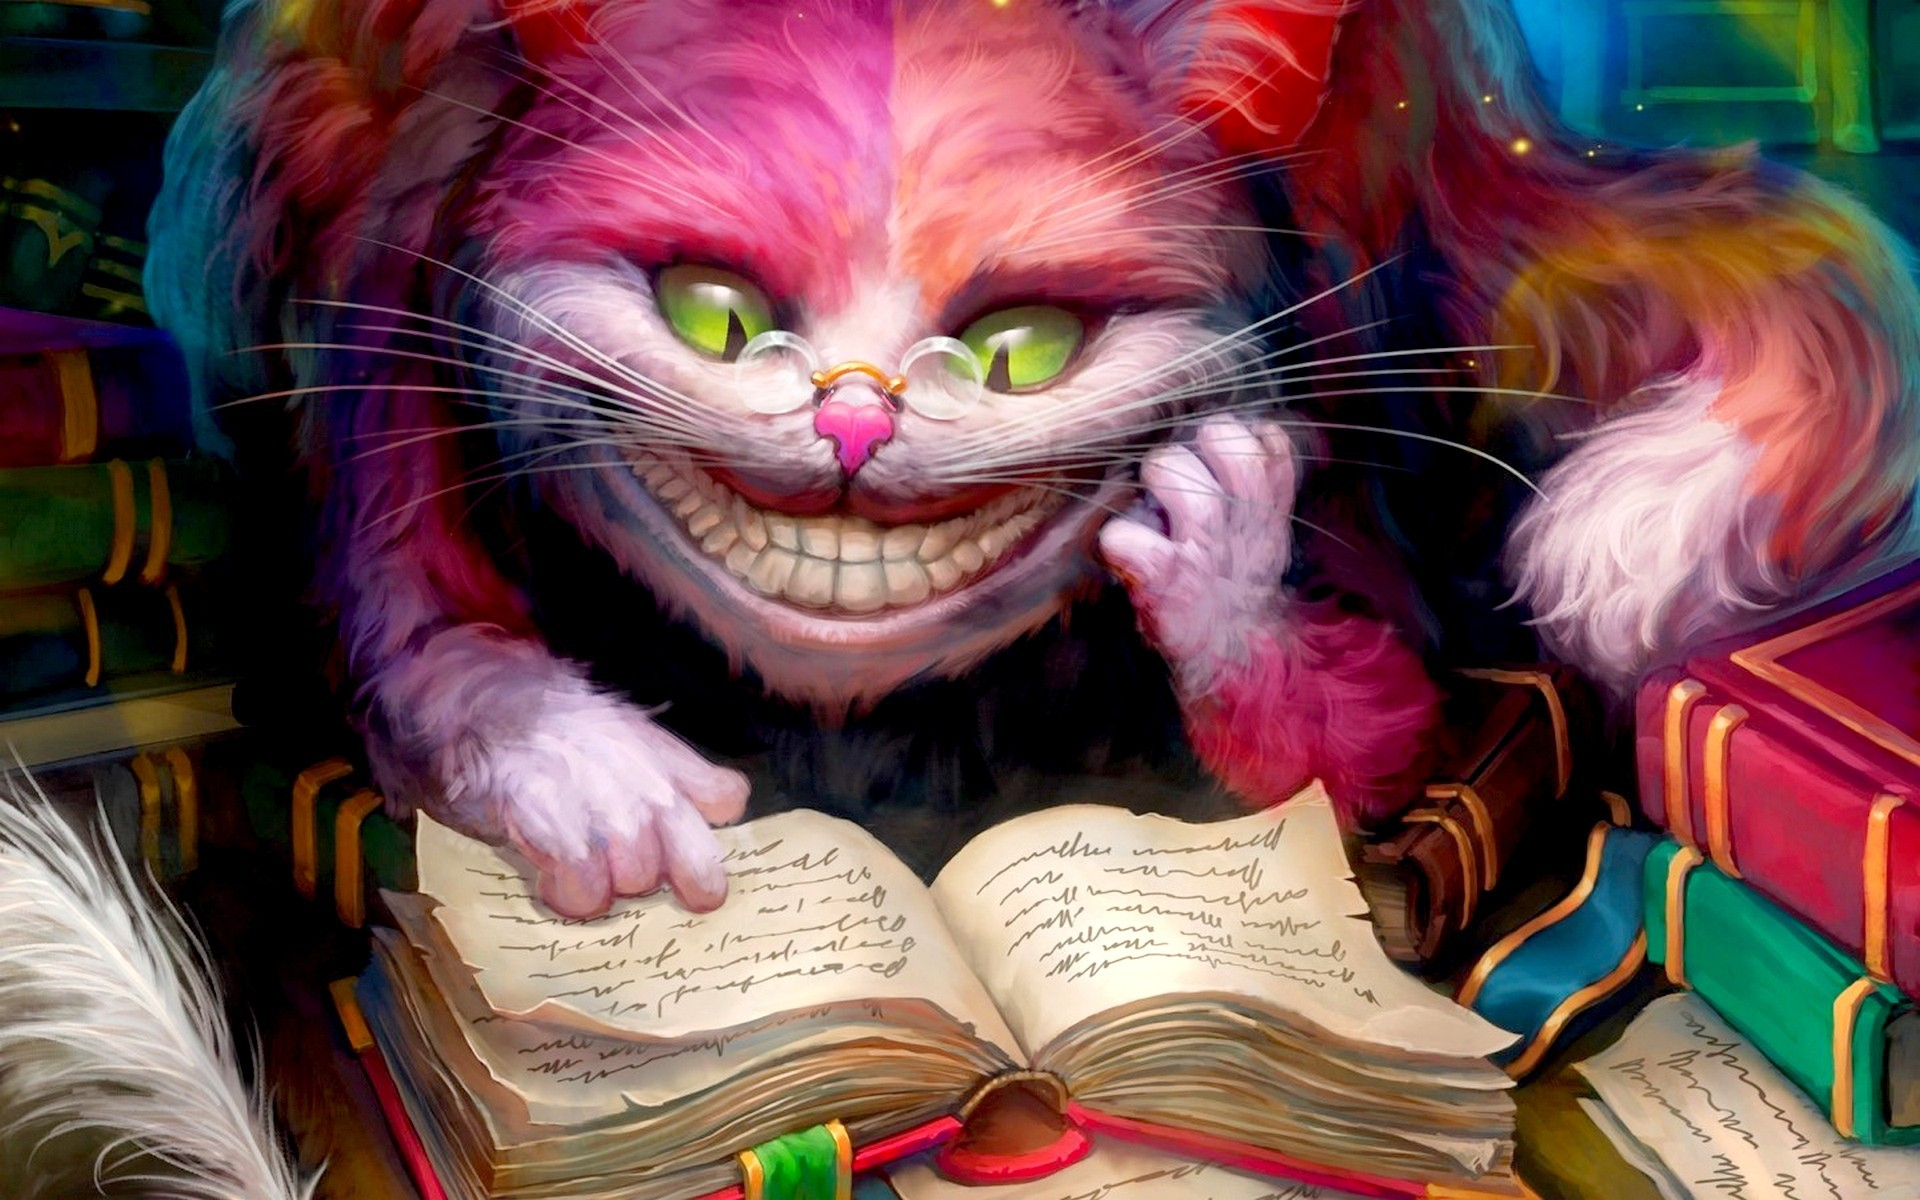 Fantasy_Cheshire_Cat_reading_a_book__Alice_in_Wonderland_102313_